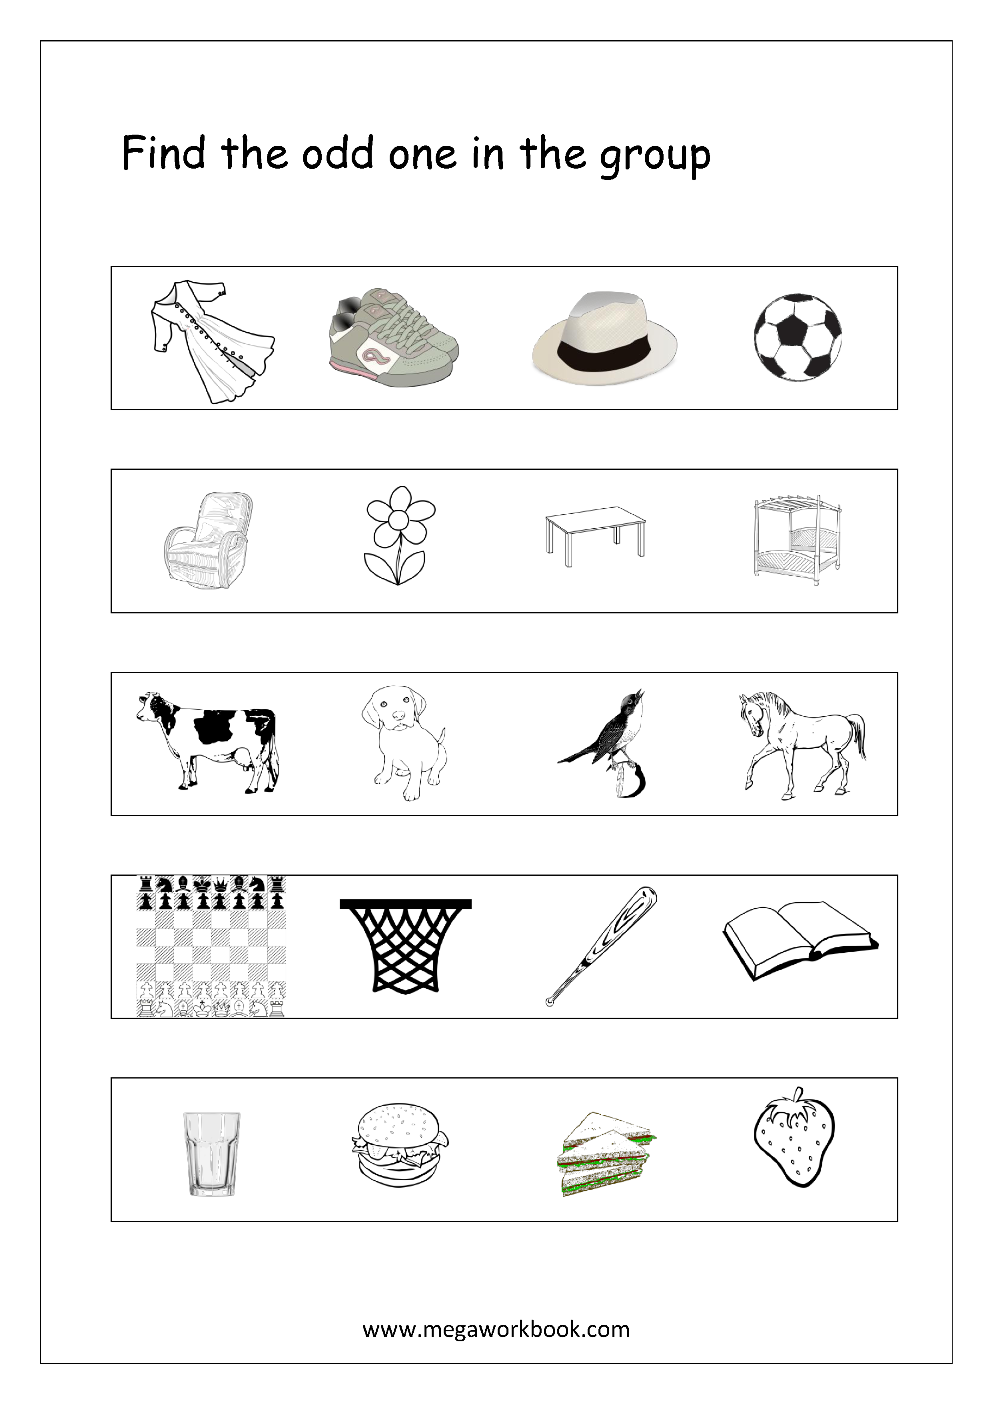 What goes together what doesn t belong fun worksheets and cut and - Free Printable General Aptitude Worksheets For Preschool And Kindergarten Find The Odd One In The Group